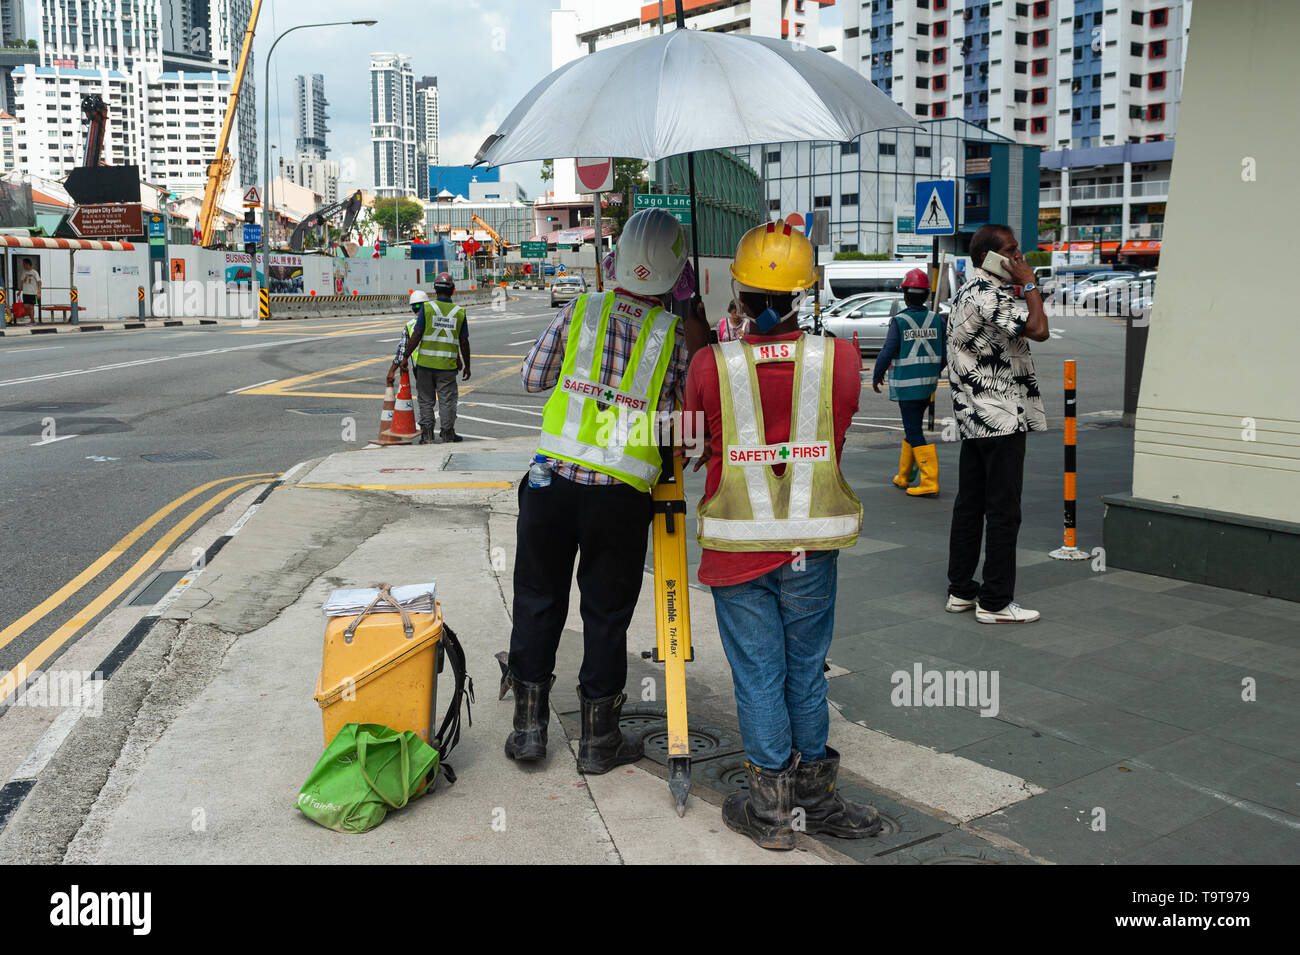 18.04.2018, Singapore, Republic of Singapore, Asia - A surveyor is taking readings from a theodolite in Chinatwon. - Stock Image